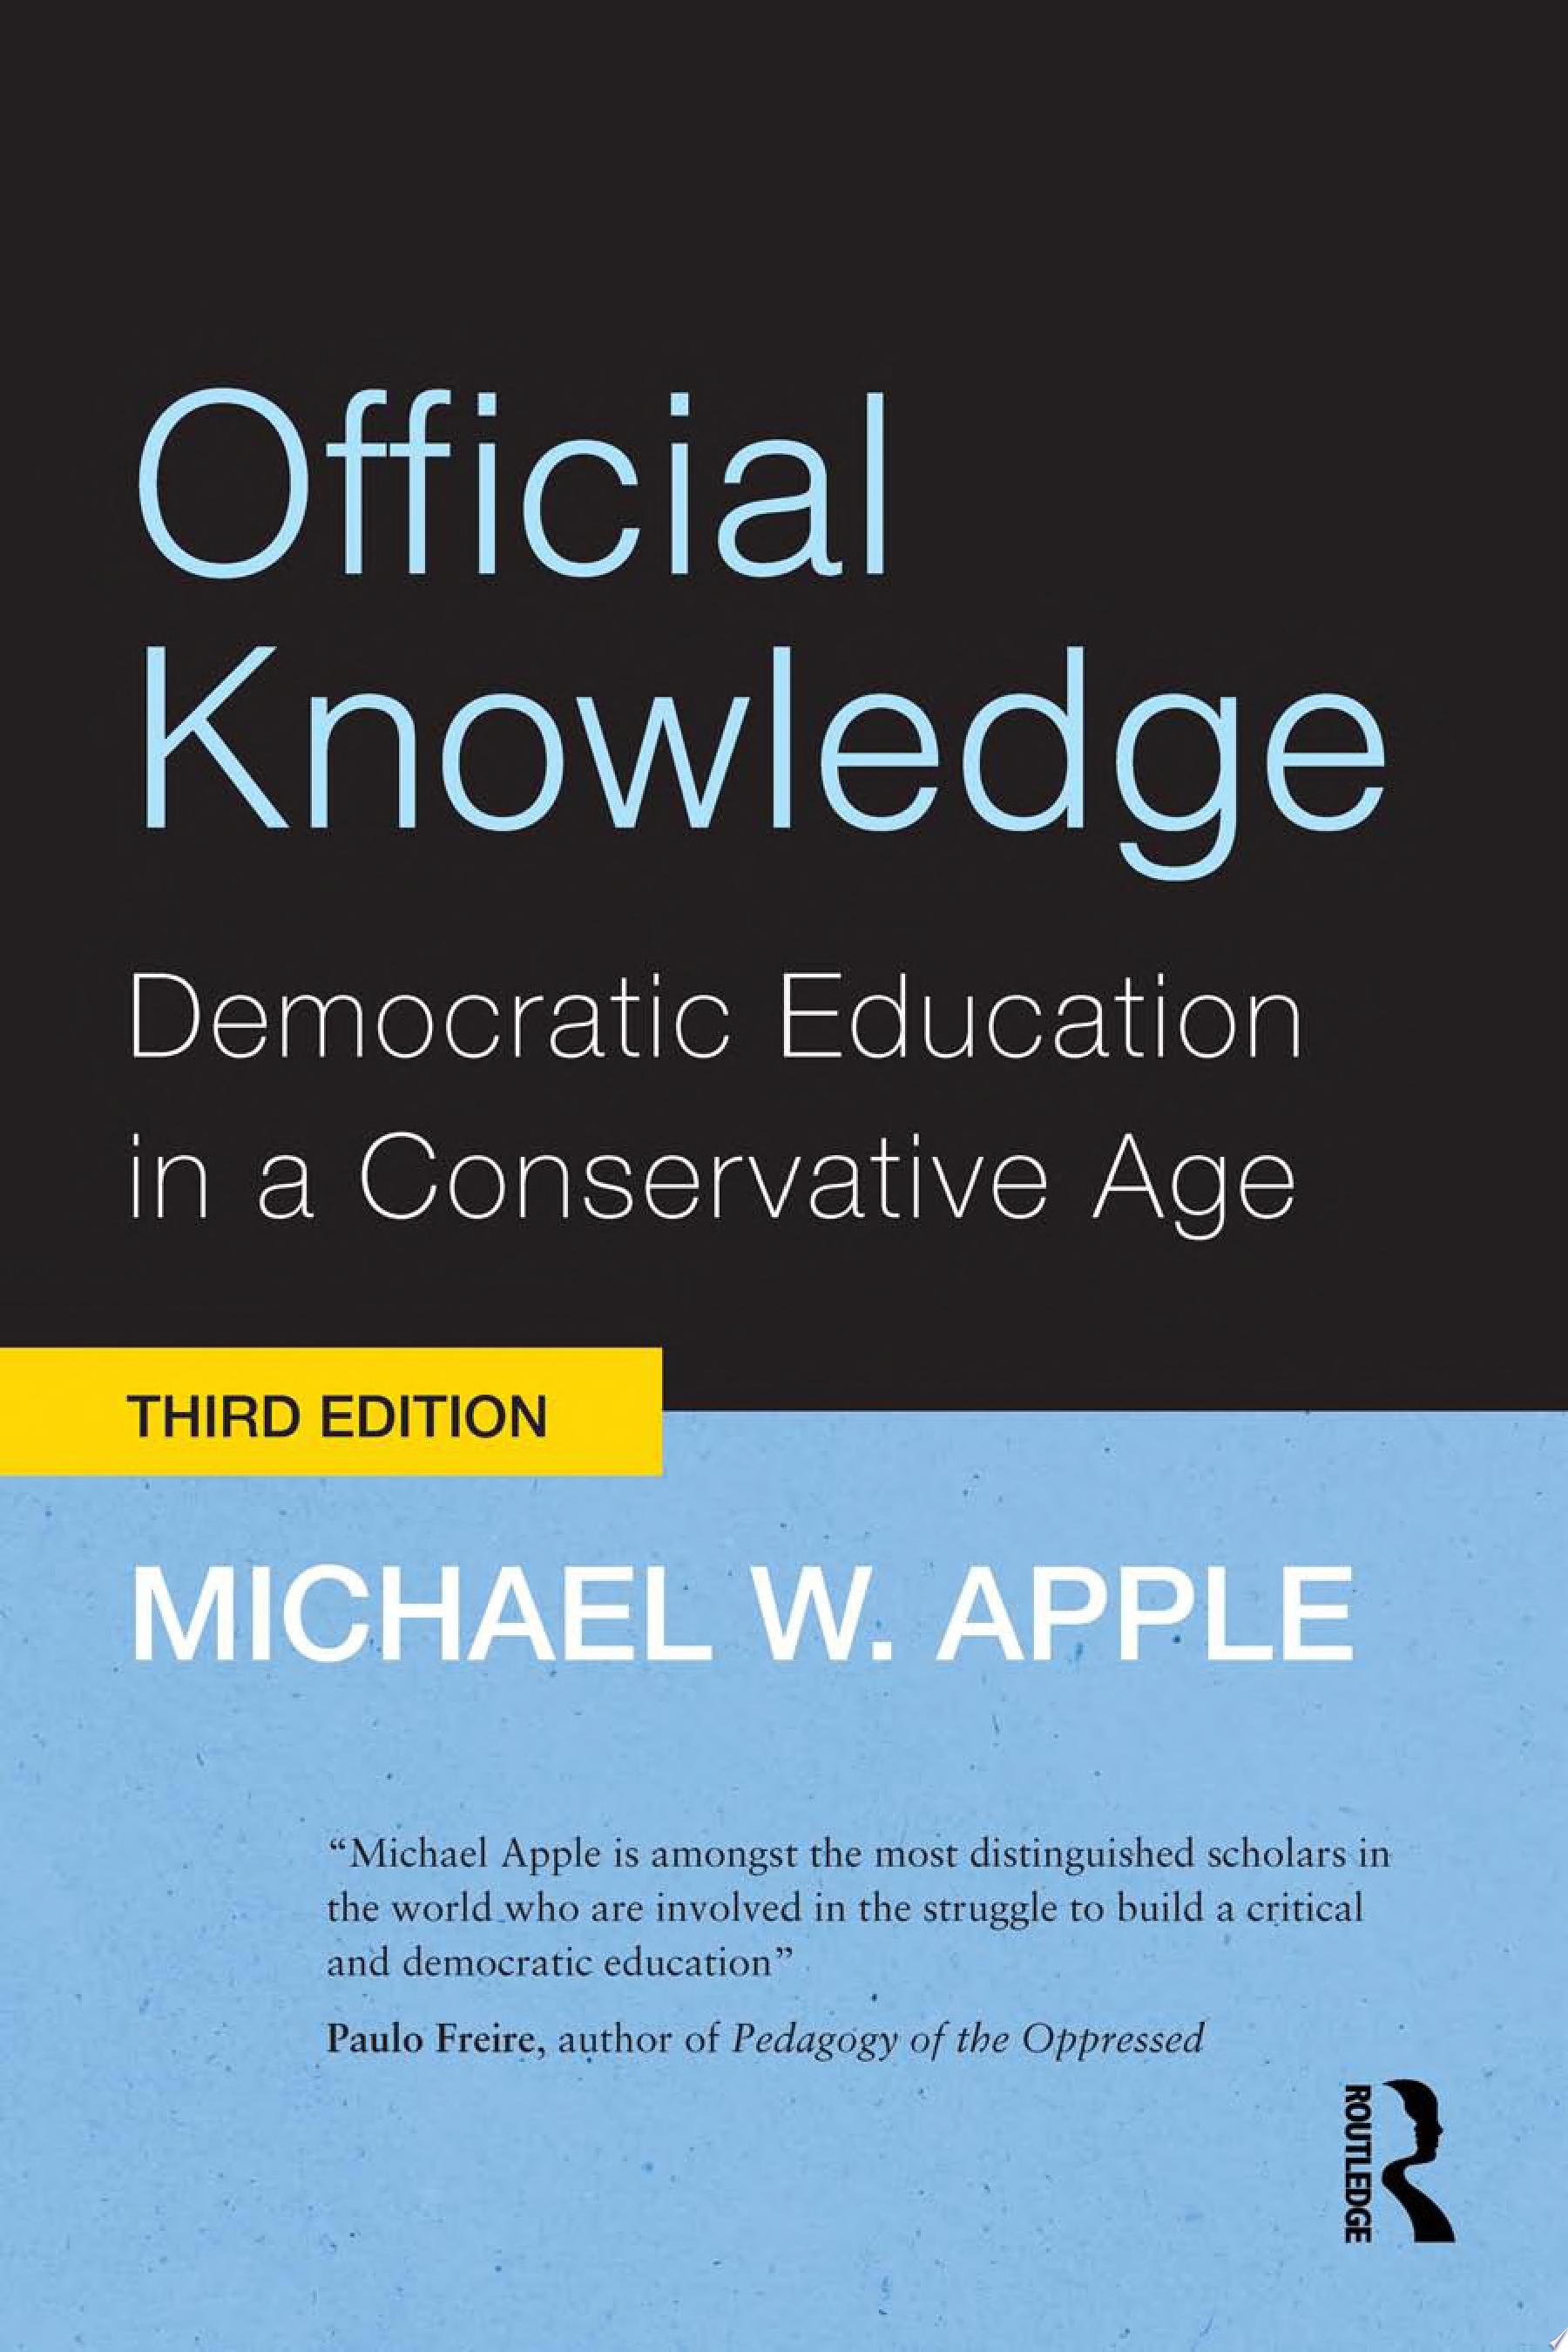 Official Knowledge